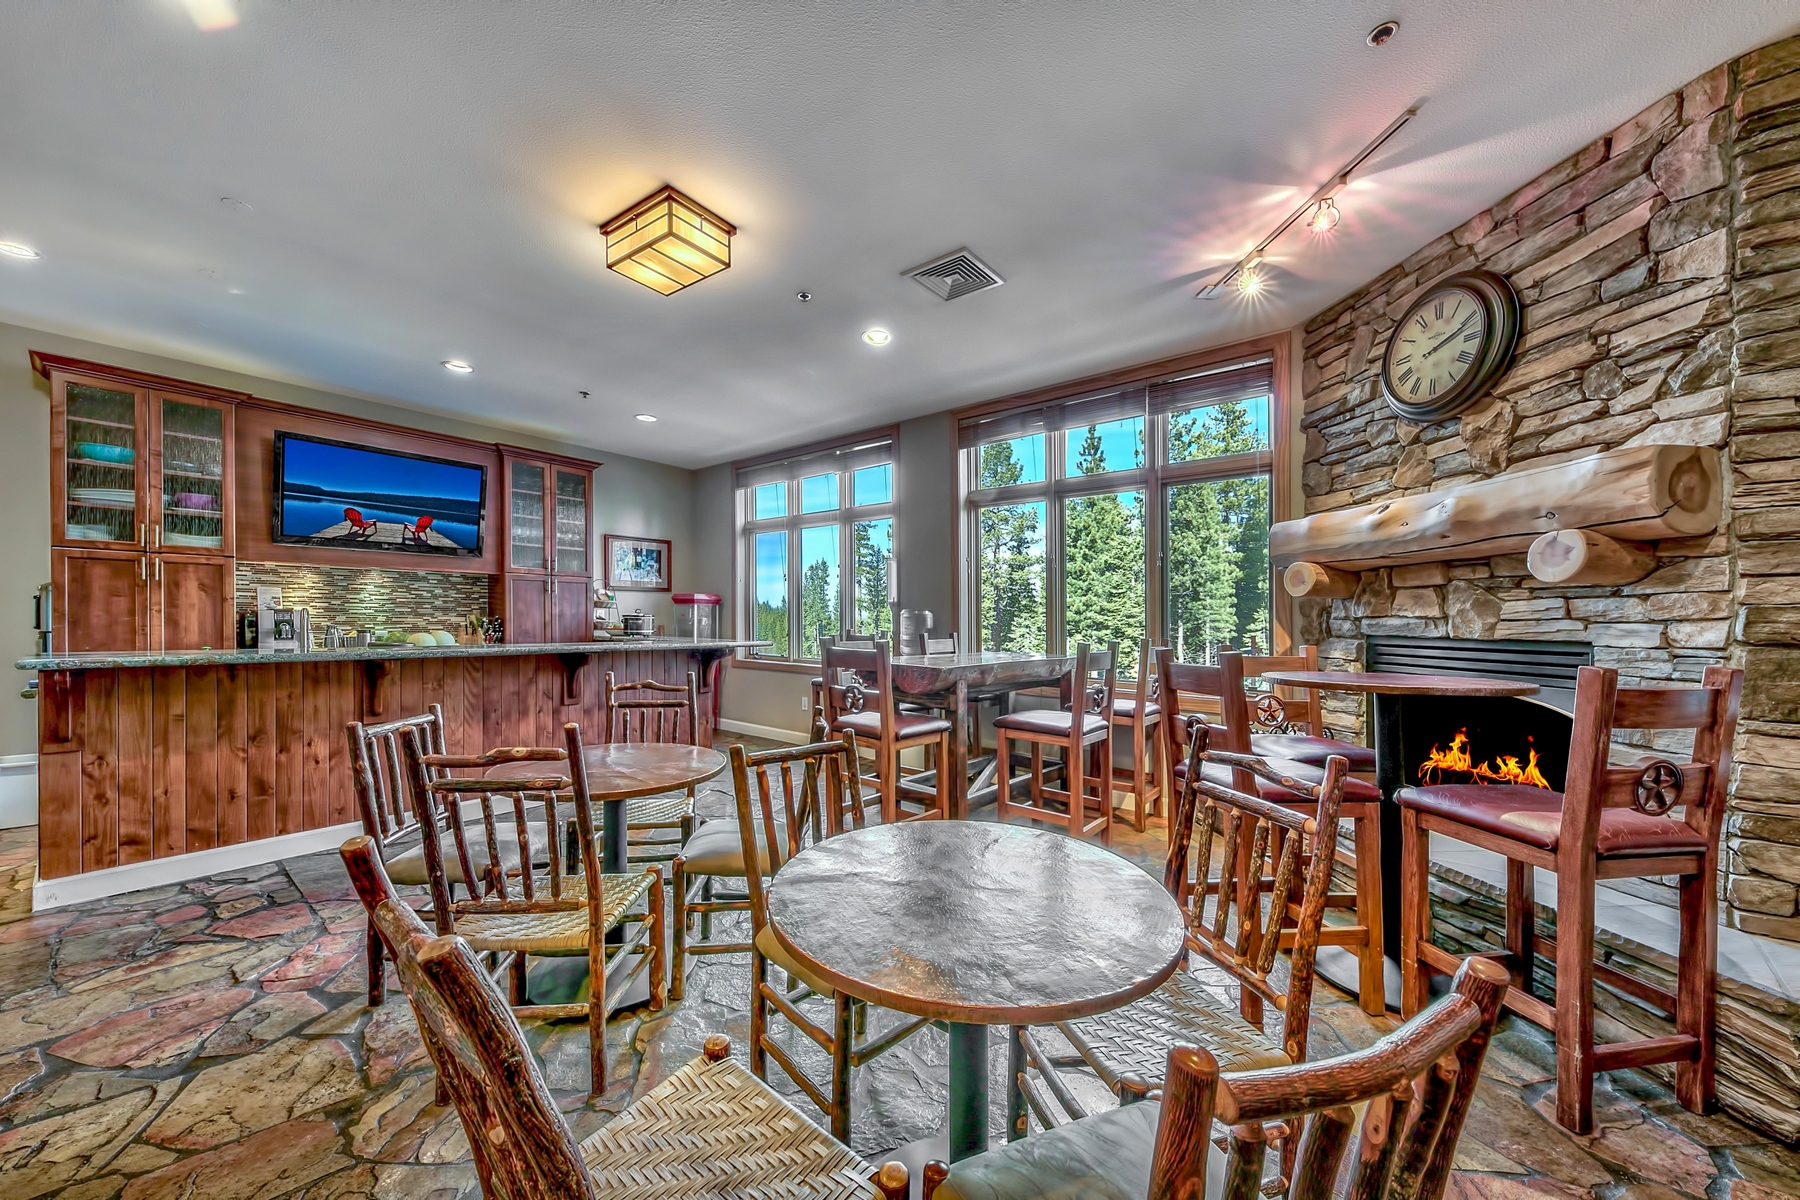 Additional photo for property listing at 2100 N Village Drive 302/#6, Truckee, CA 2100 N Village Drive 302/#6 Truckee, California 96161 United States